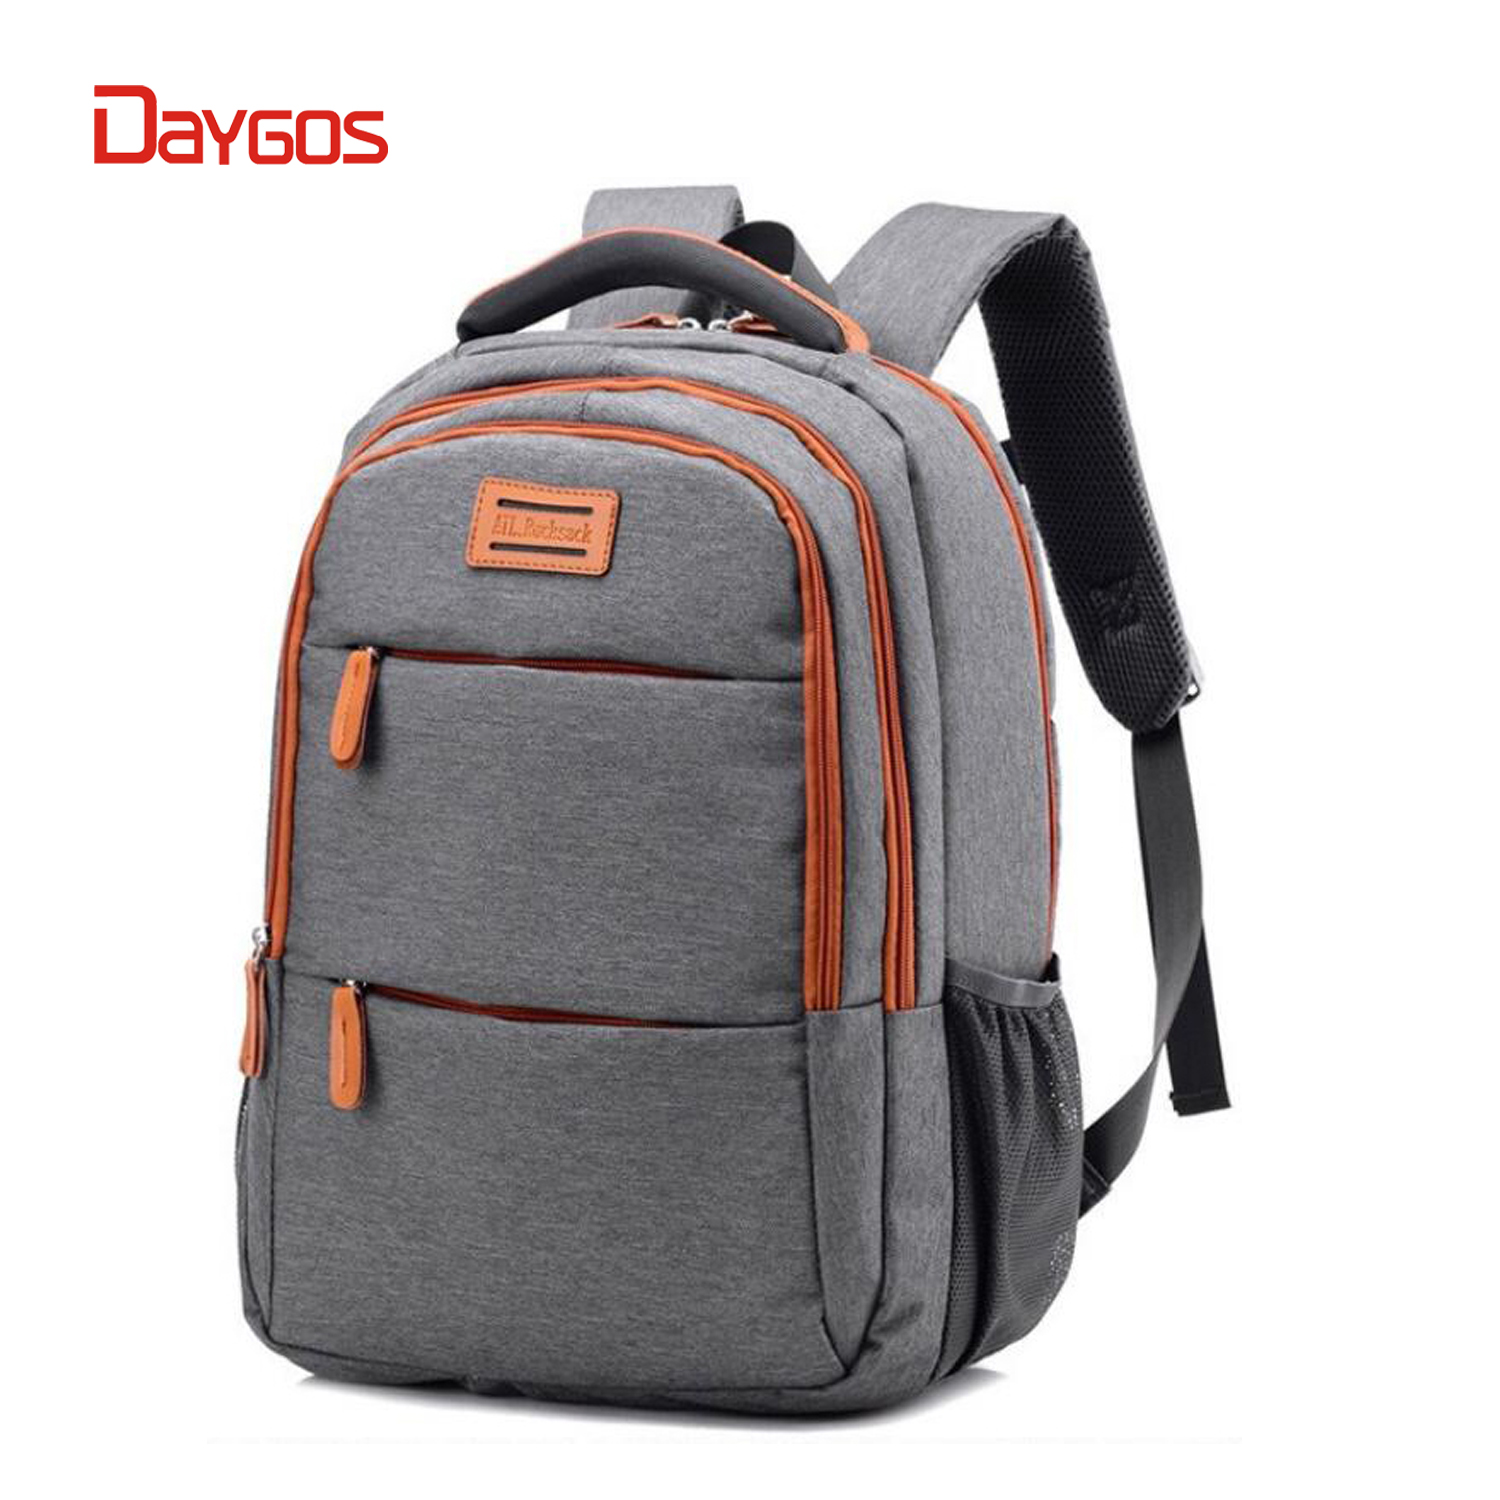 DAYGOS Canvas School Bags For Teenager Men Laptop Backpacks Women Notebook Back Pack Mochila Leisure Travel Casual Bag Rucksack multifunction men women backpacks usb charging male casual bags travel teenagers student back to school bags laptop back pack